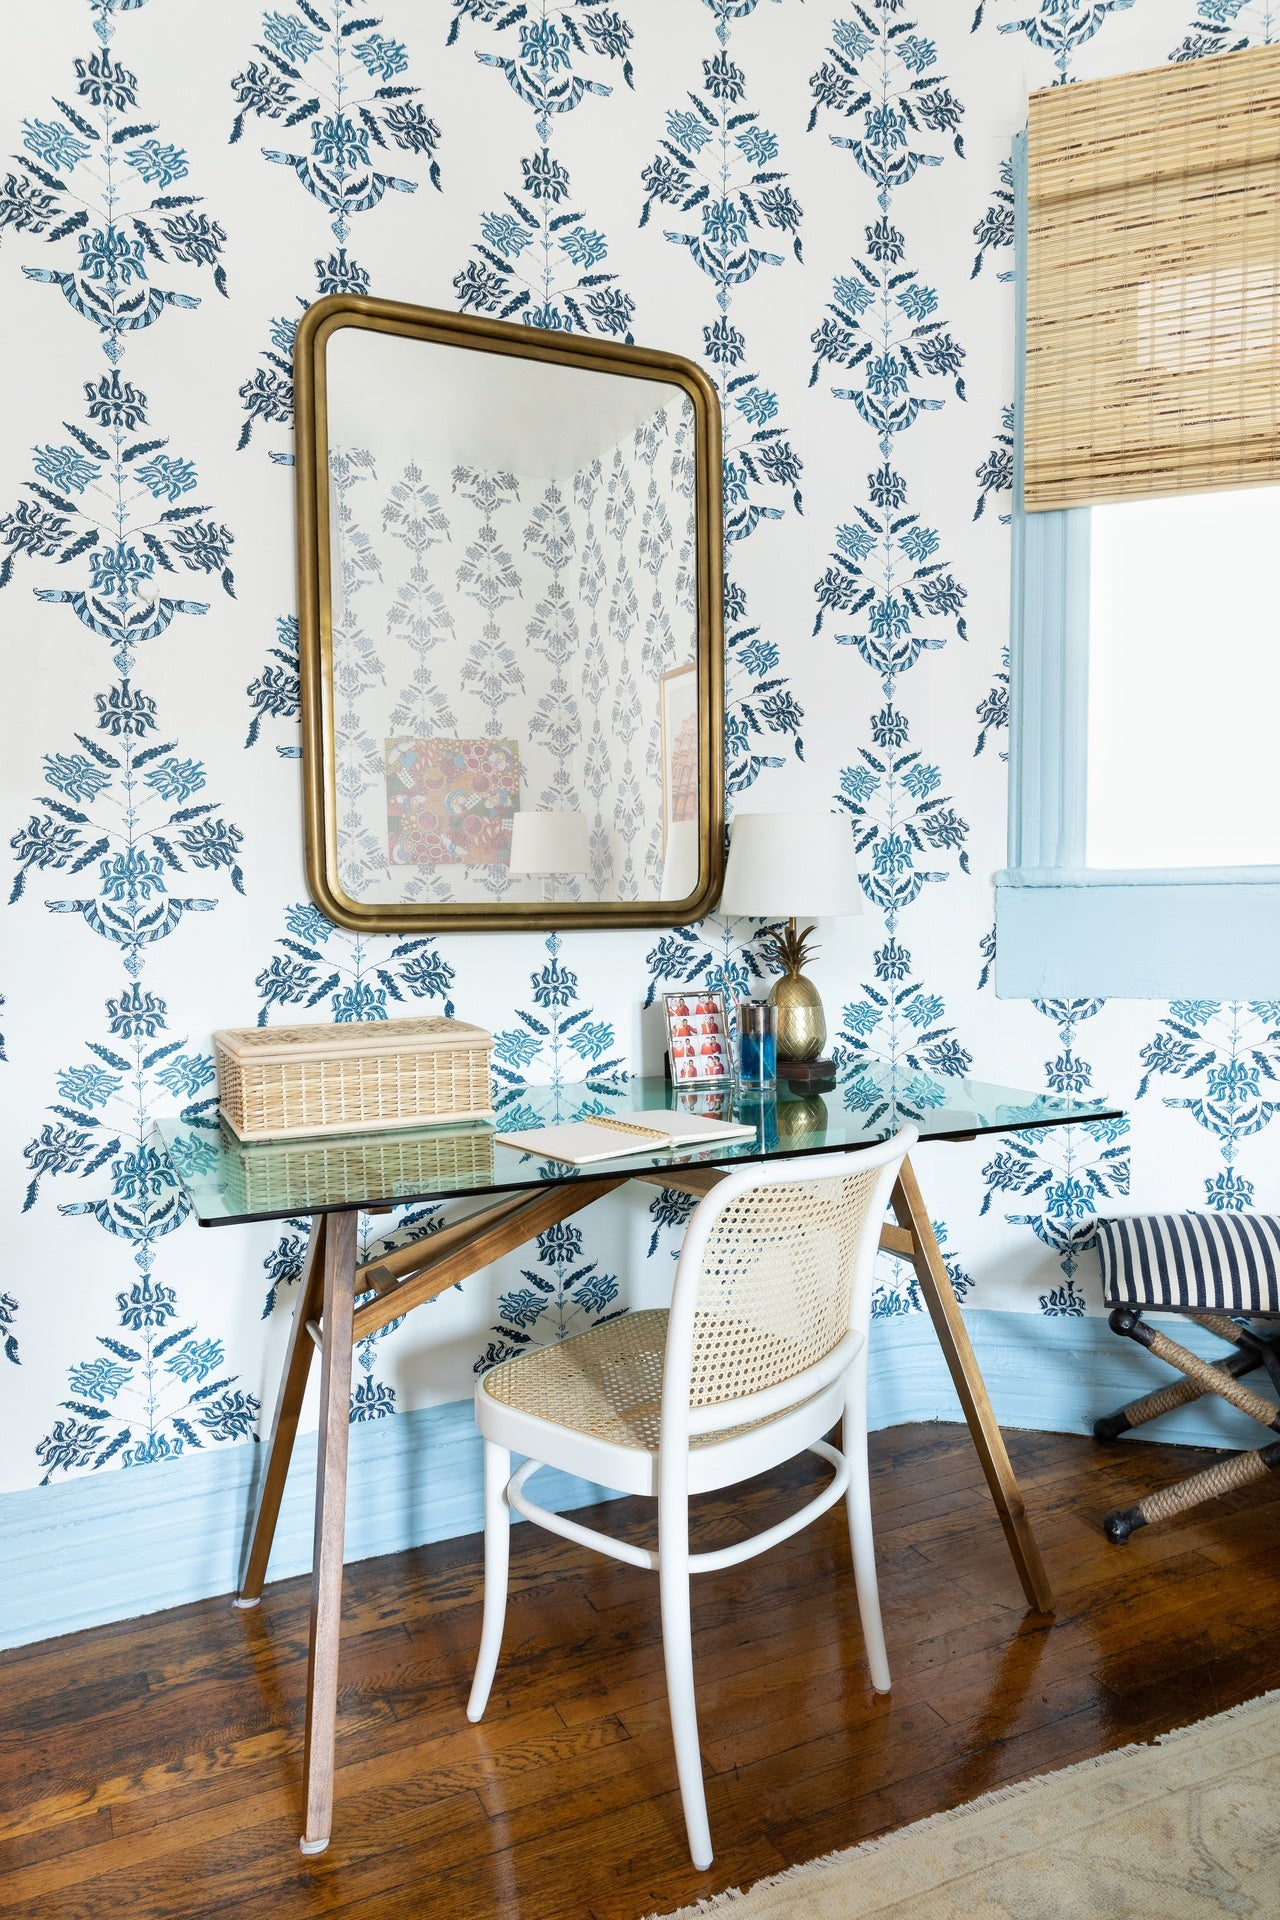 Soldo (Navy) Wallpaper | Hygge & West | Before & After